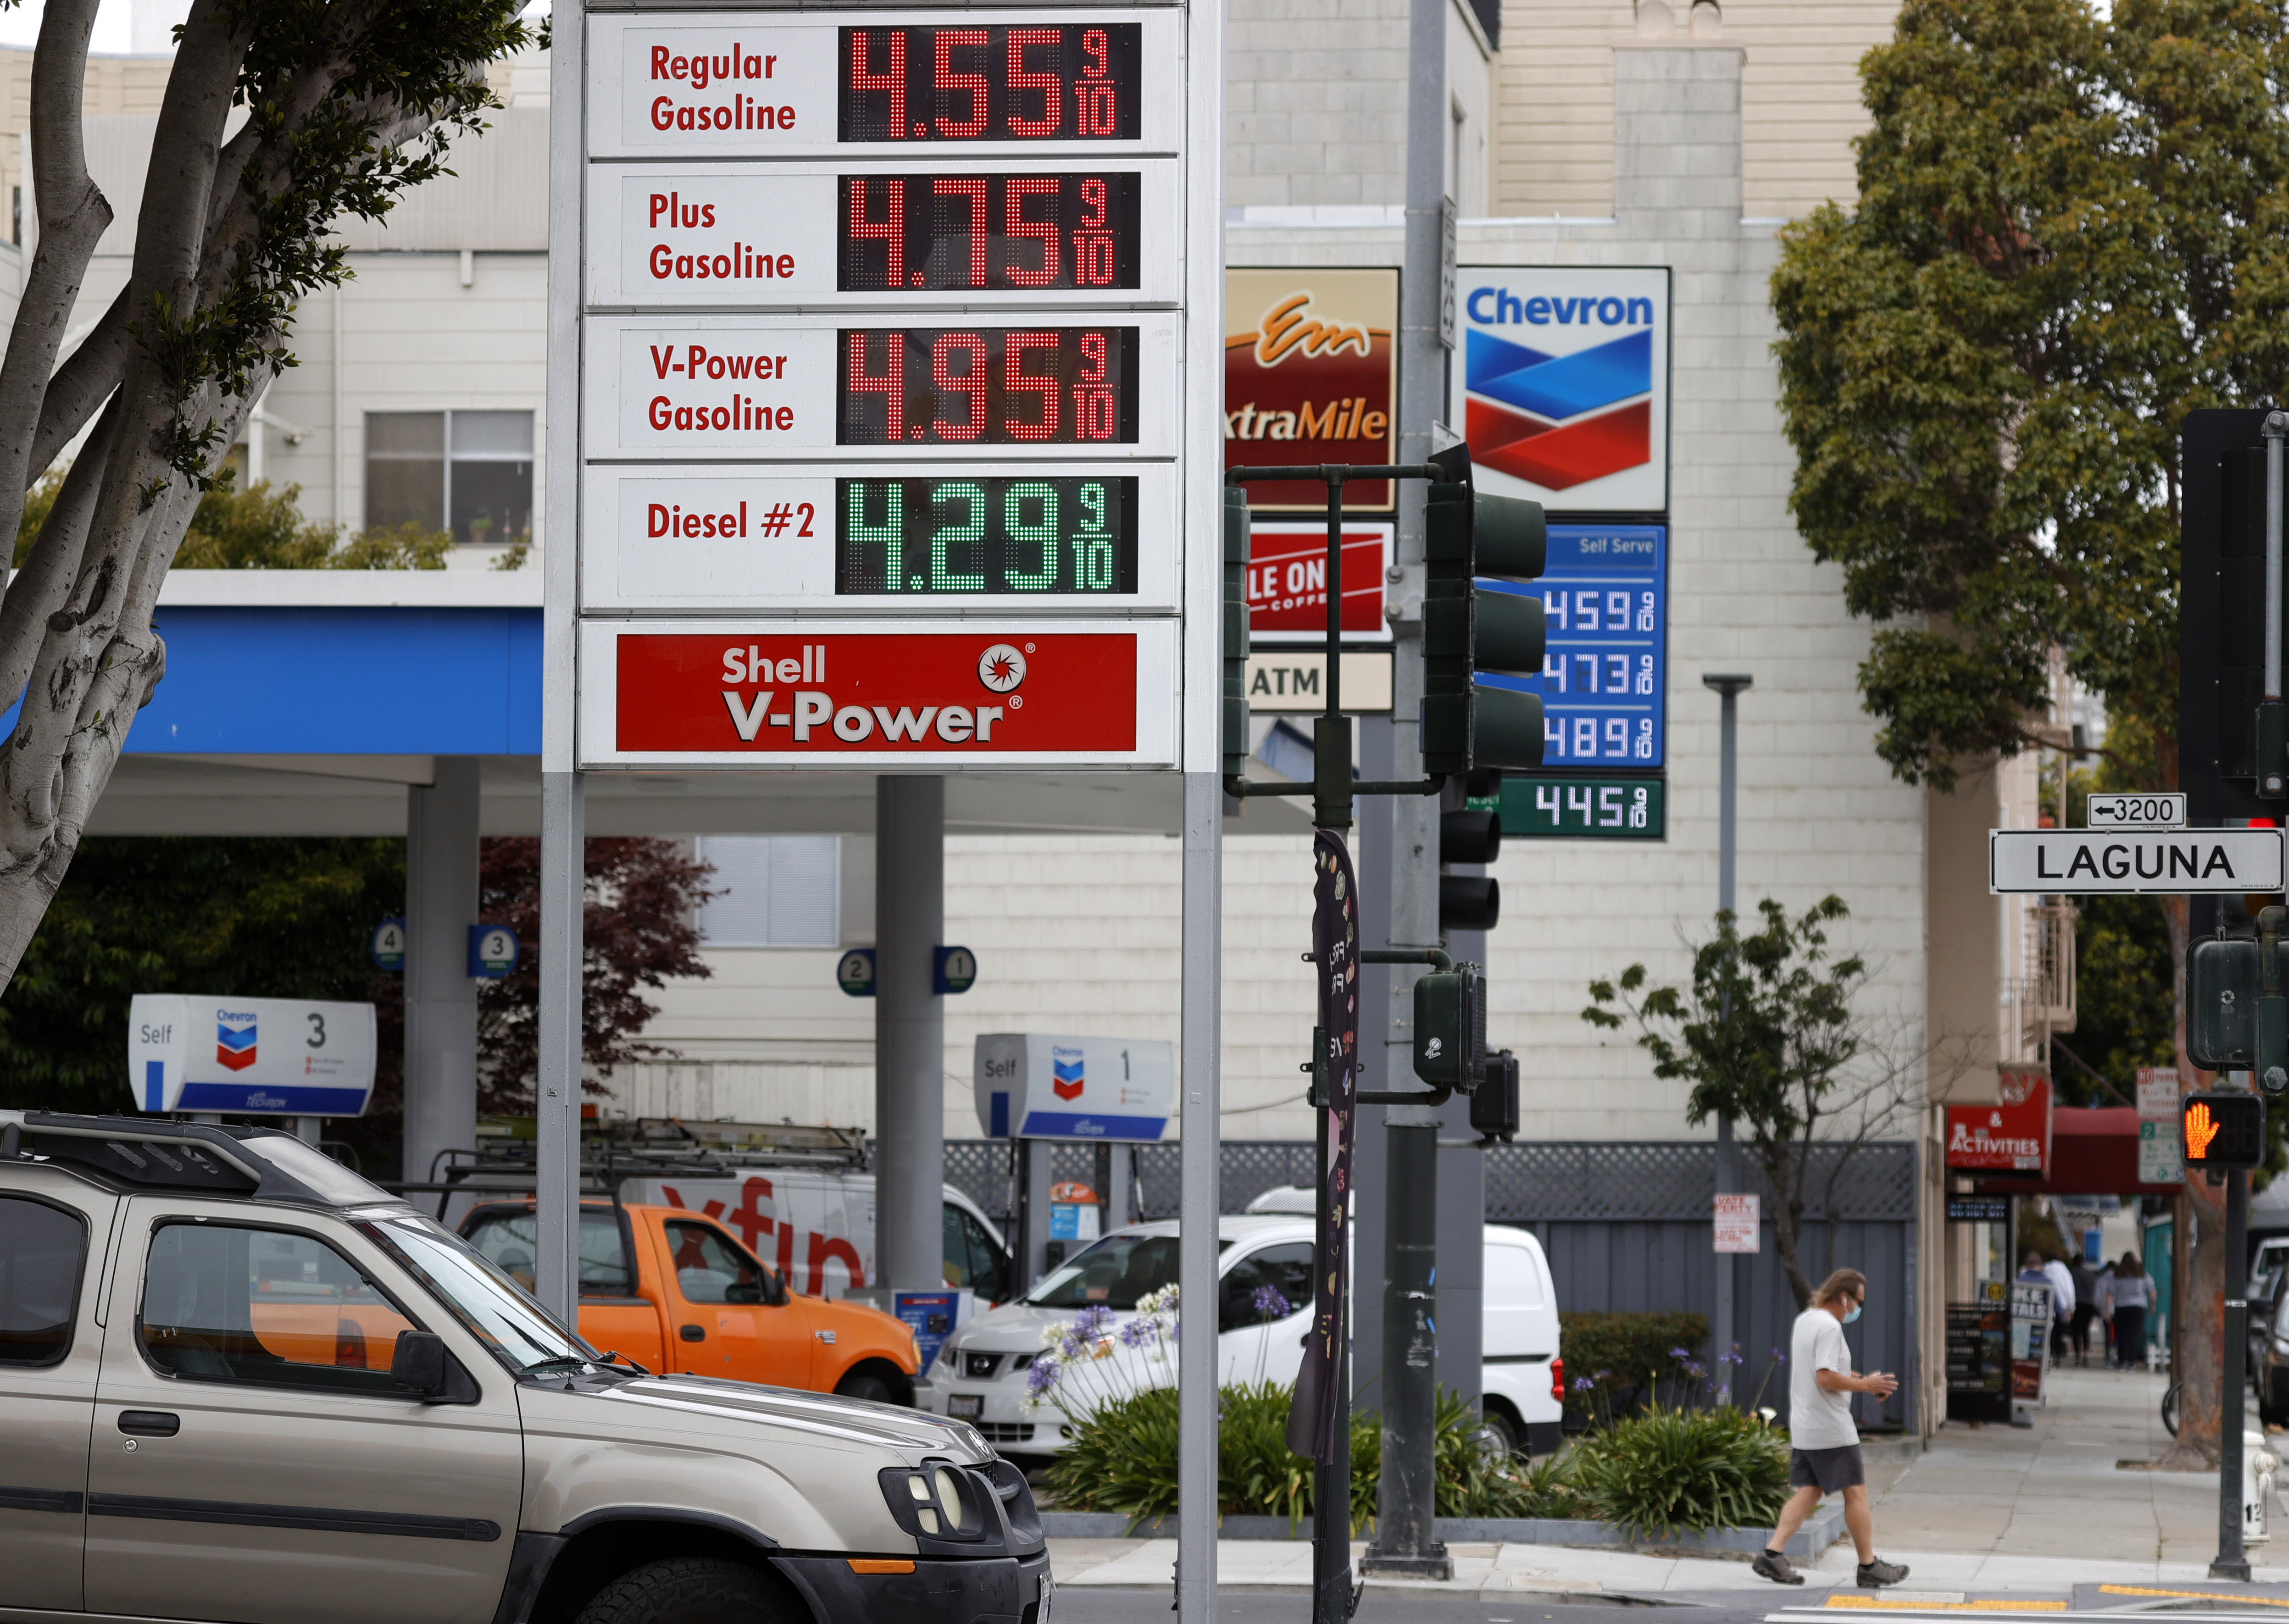 SAN FRANCISCO, CALIFORNIA - JULY 12: Gas prices nearing $5.00 a gallon are displayed at Chevron and Shell stations on July 12, 2021 in San Francisco, California. (Photo by Justin Sullivan/Getty Images)